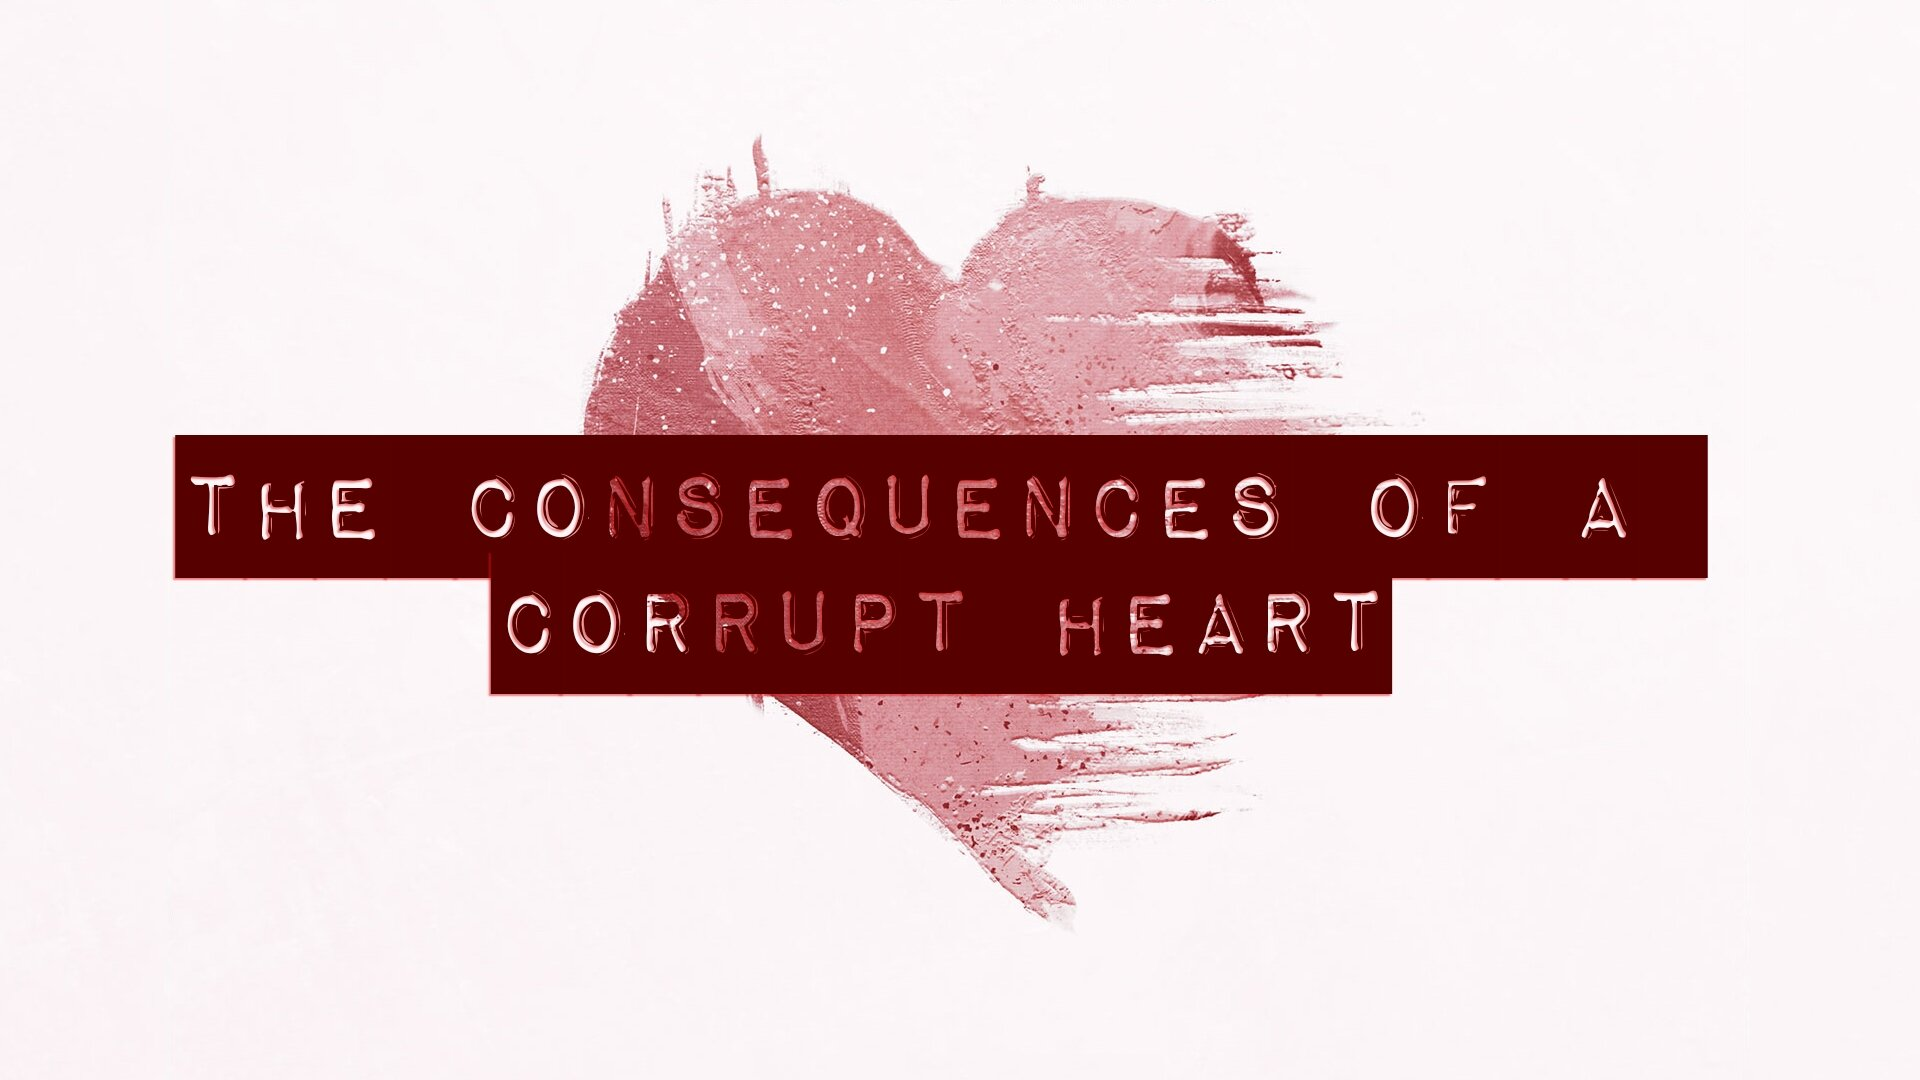 consequences of a corrupt heart 09.15.16.jpg